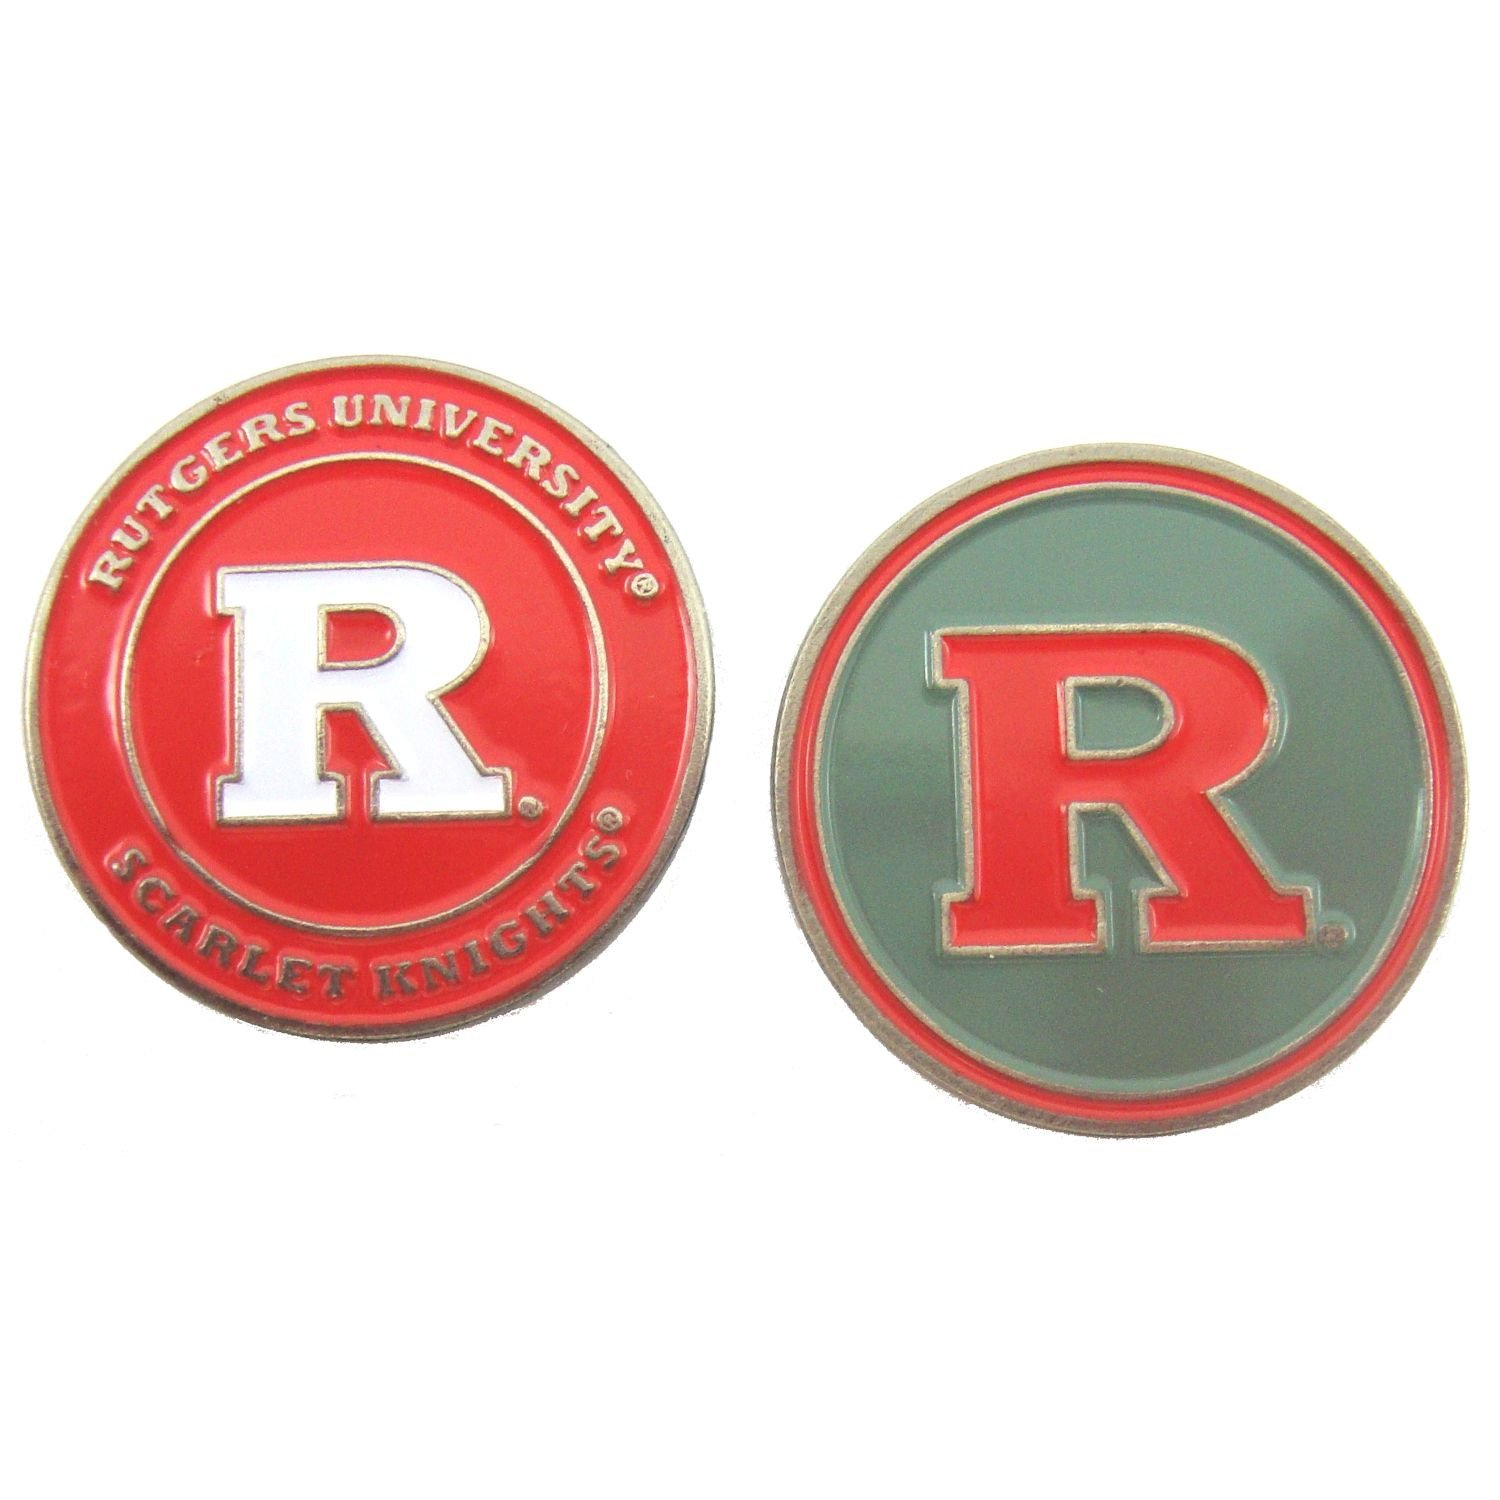 Rutgers Scarlet Knights Double Sided Golf Ball Marker, Rutgers University Ball Marker By Waggle Pro Shop,USA